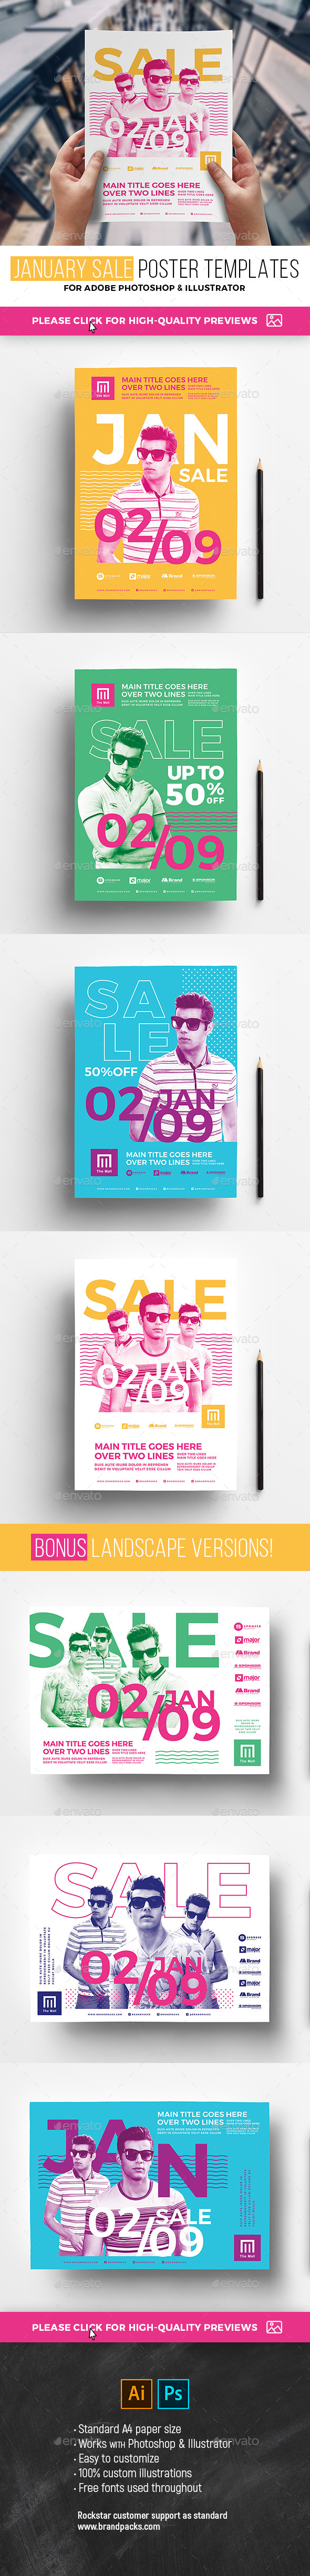 Poster templates for sale